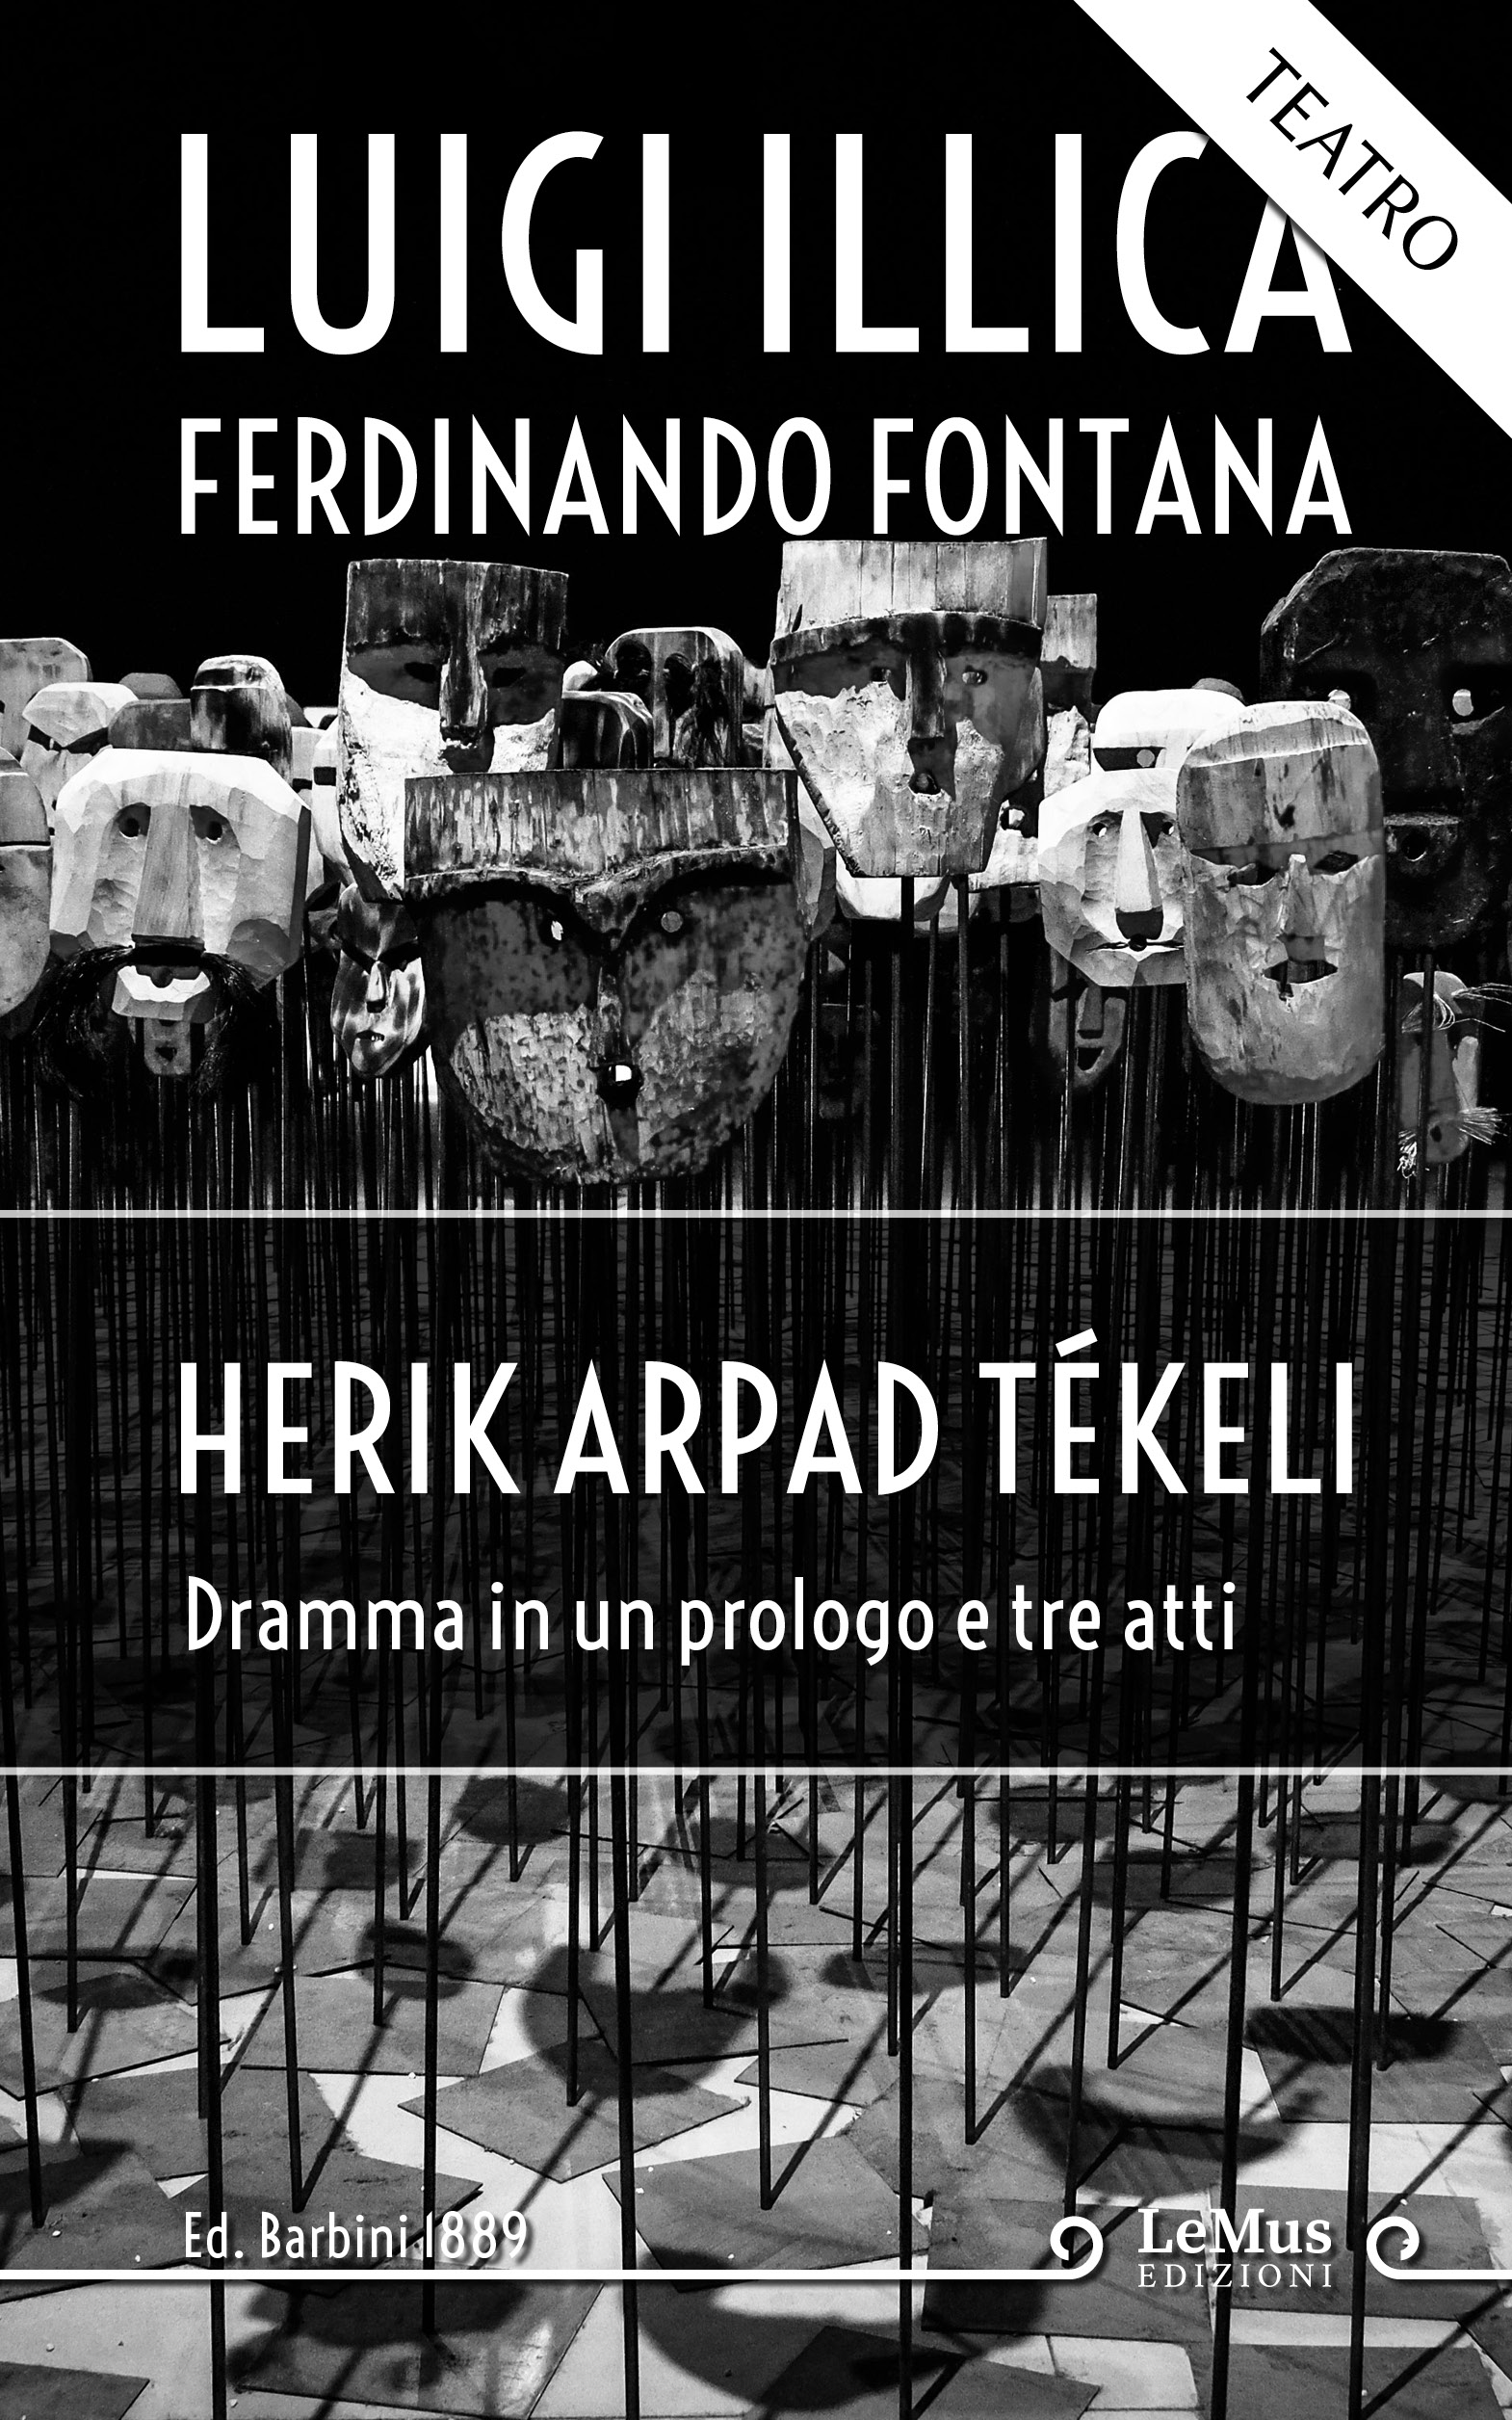 COVER-EBOOK-ILLICA-HERIK